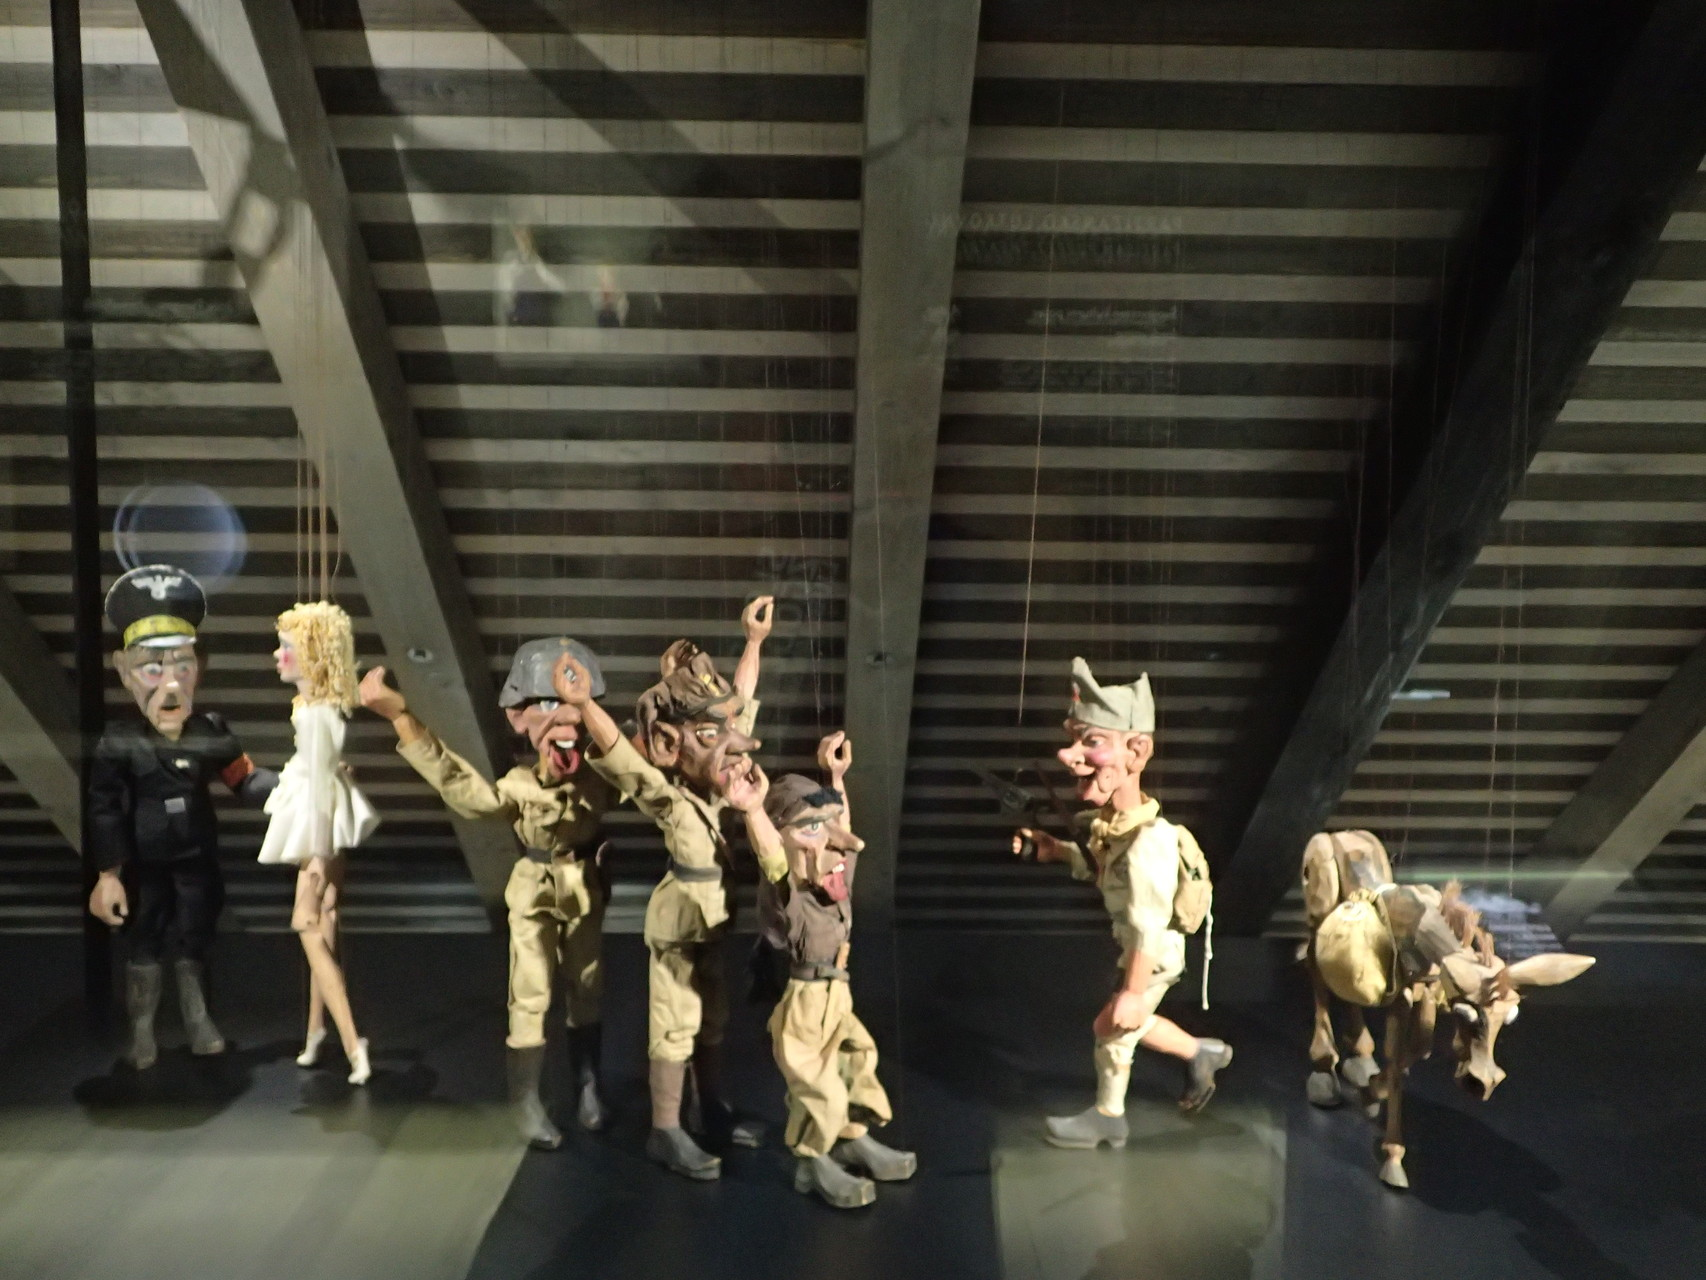 Puppetry under the Occupation of Nazi-Germany